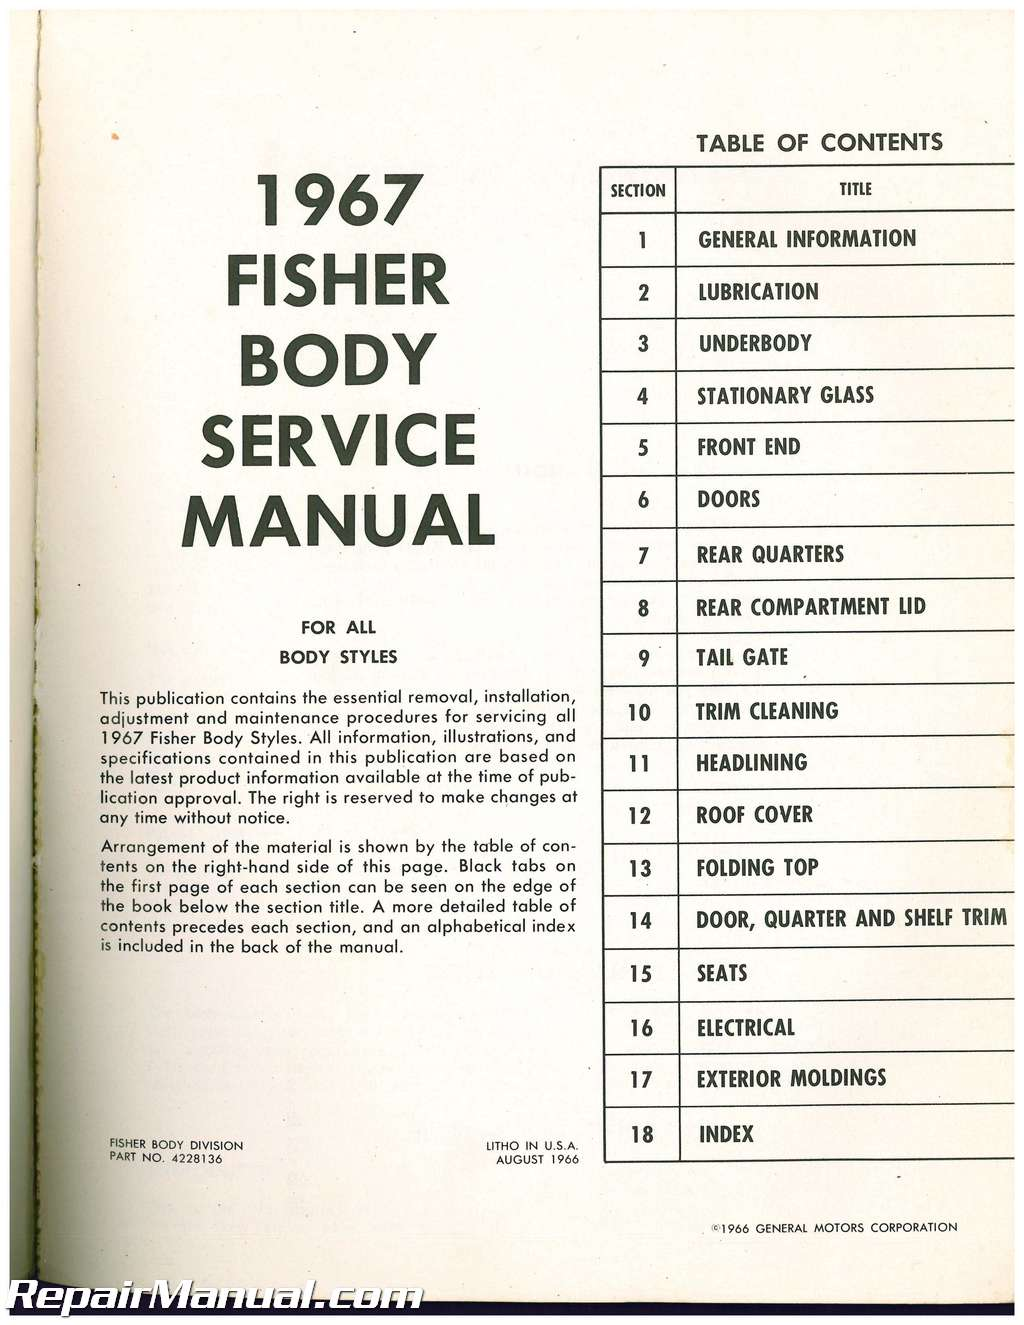 1967 fisher body service manual all body styles Fisher Body Assembly Line Fisher 9800 Body by Vi